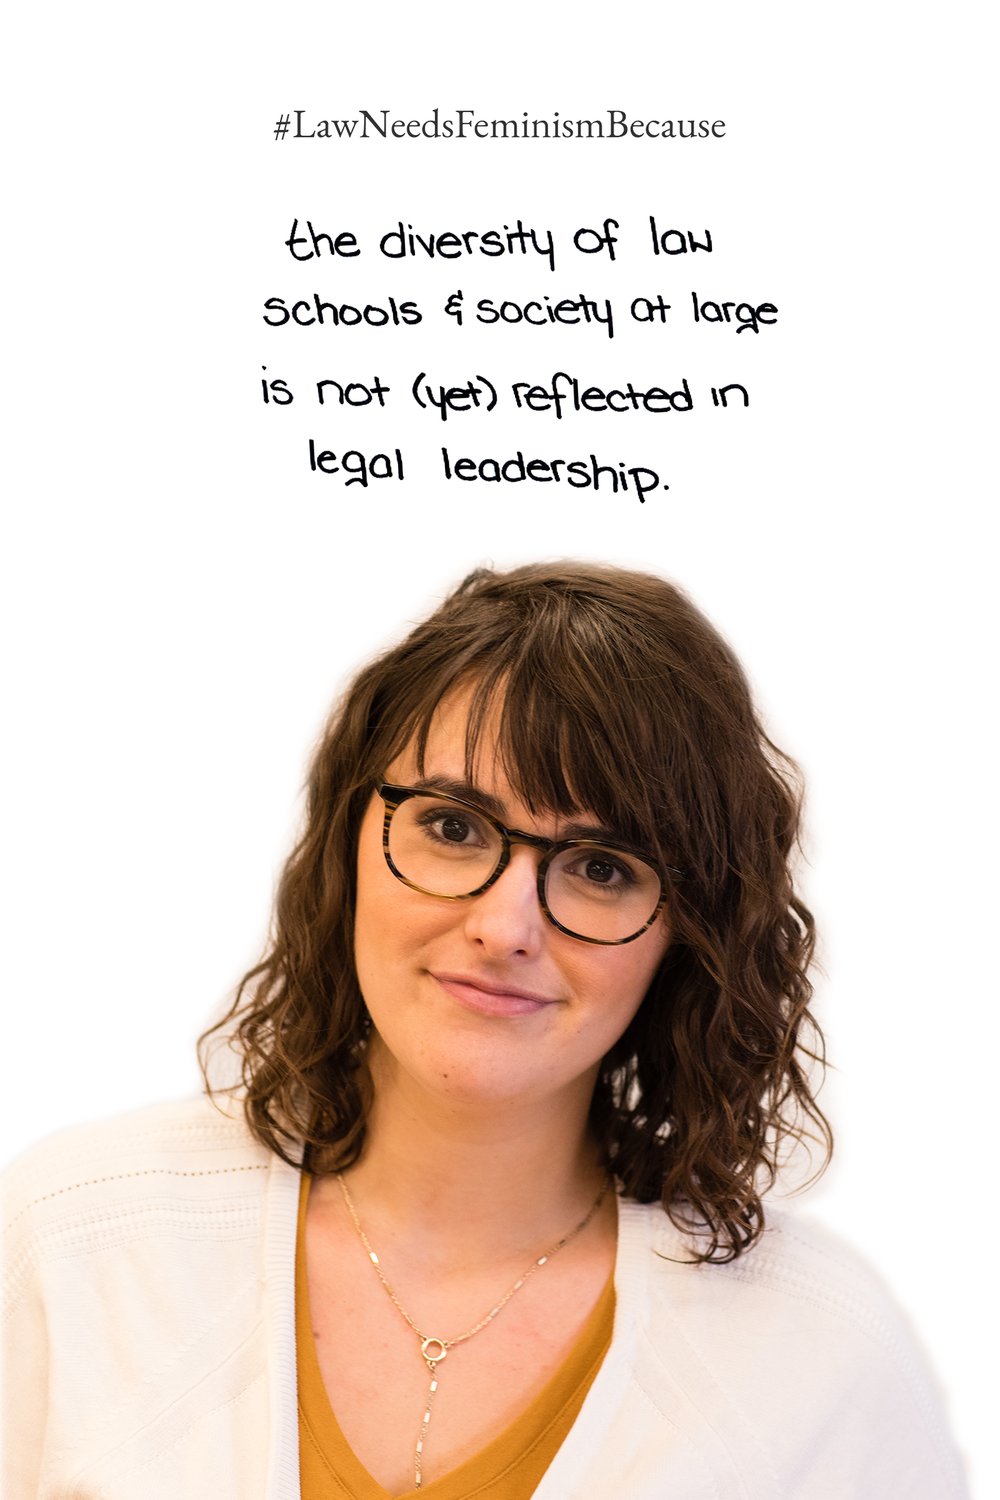 Law Needs Feminism Because  the diversity of law schools & society at large is not (yet) reflected in legal leadership.